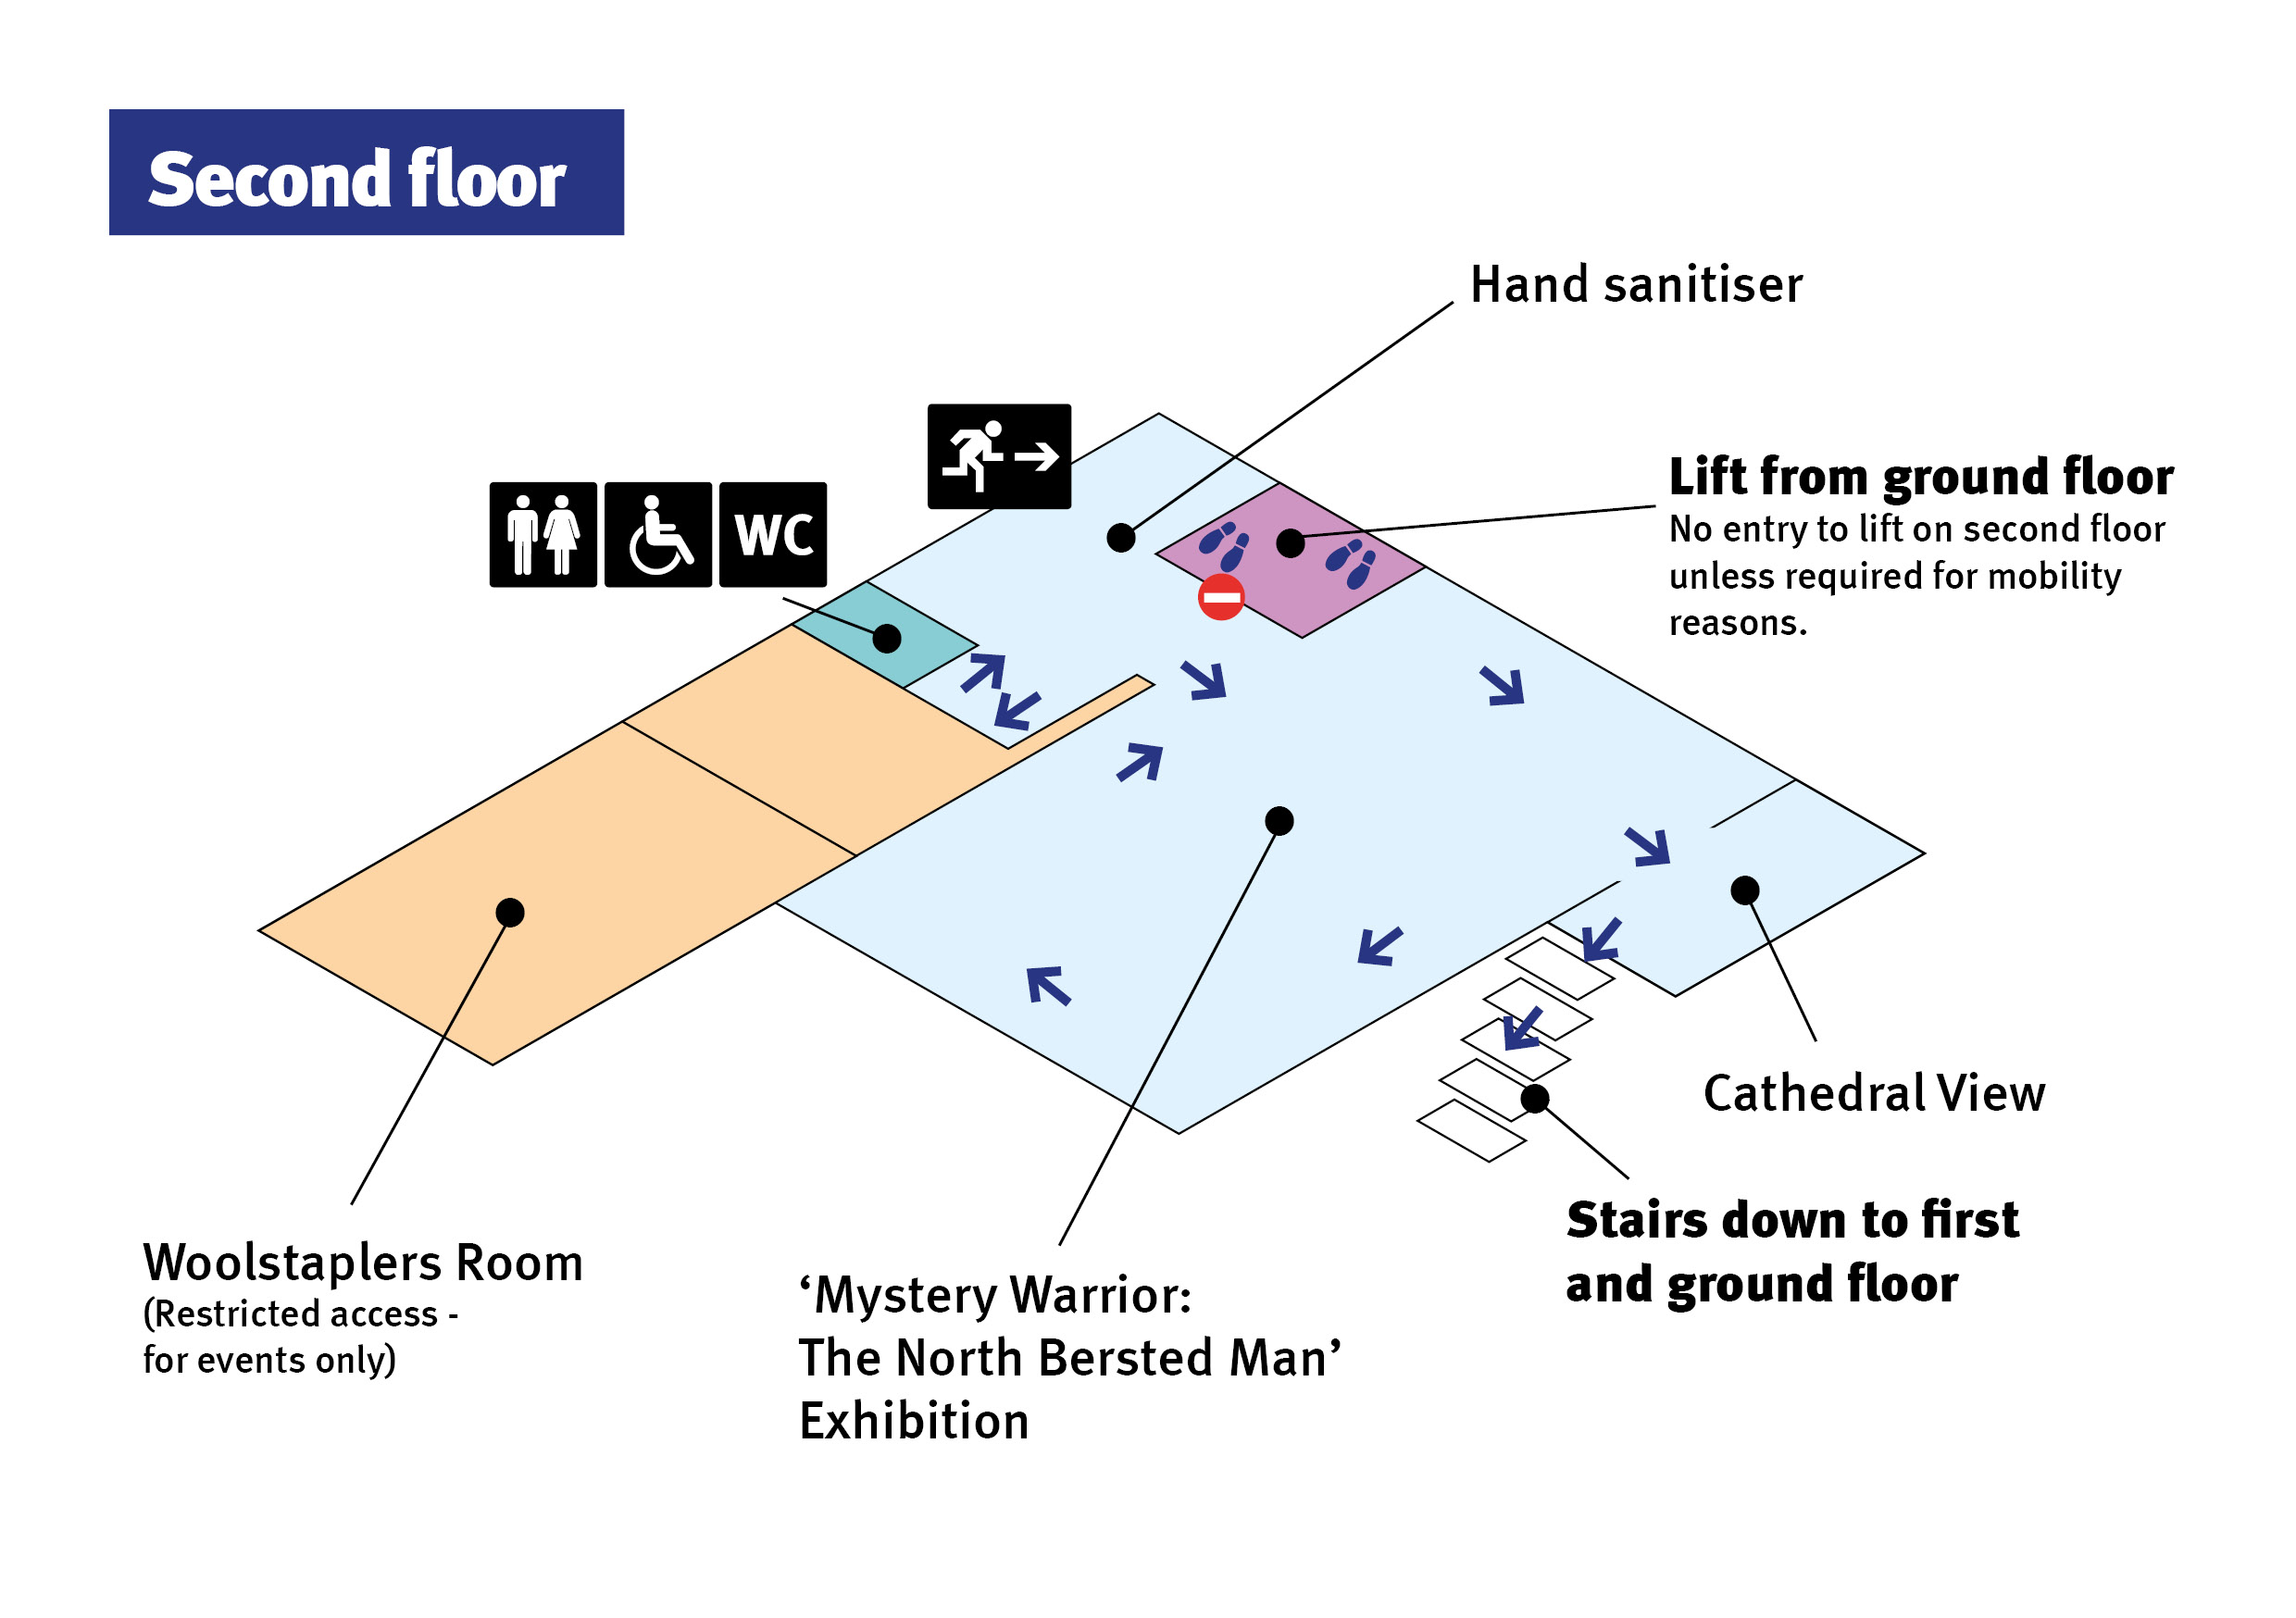 Map of second floor one-way circulation